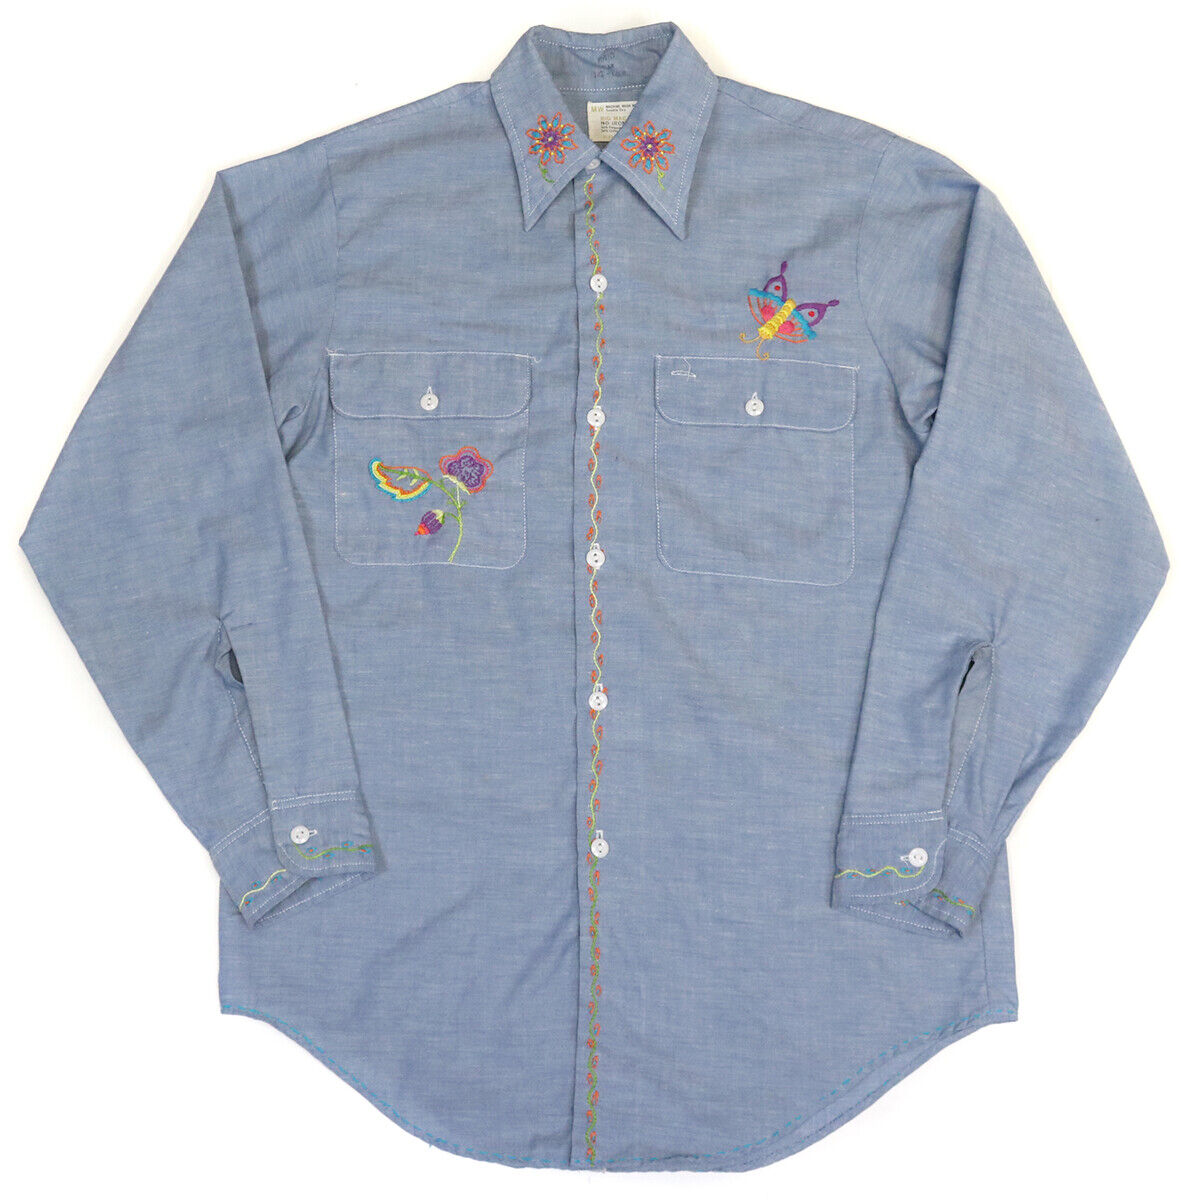 1970s JC Penney Big Mac Size M Floral Butterfly Embroidered Farm Country Shirt